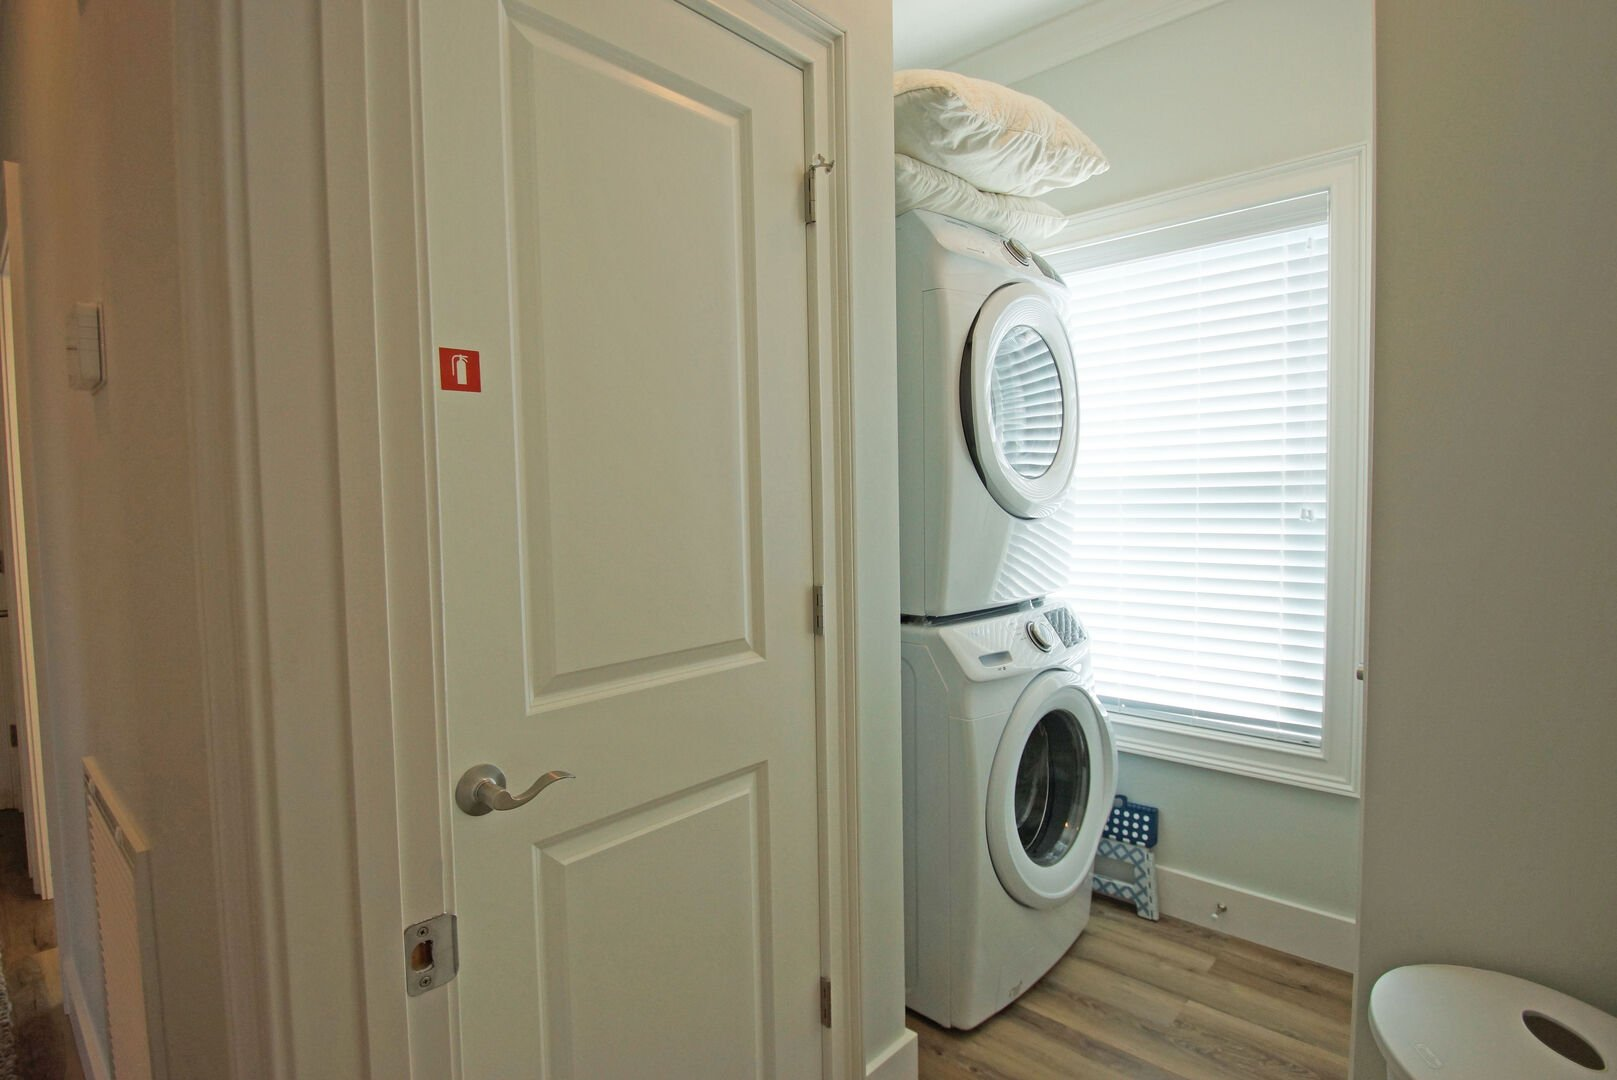 Stackable Washer and Dryer in the Laundry Room